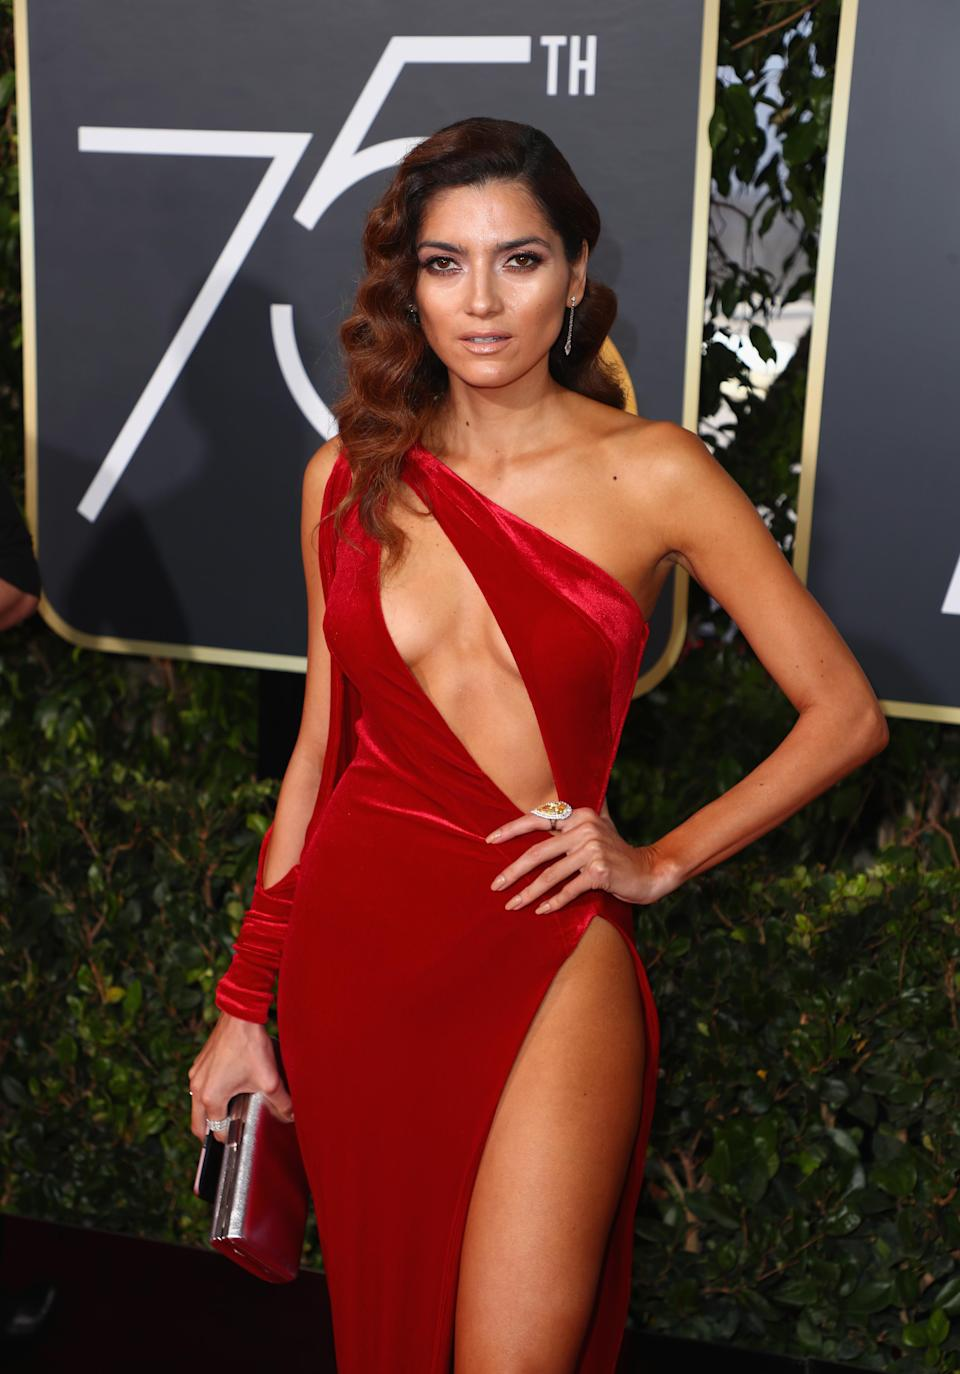 Blanca Blanco was shamed for not participating in the all-black dress code at the Golden Globes and instead wearing a sexy, red dress. (Photo: Getty Images)